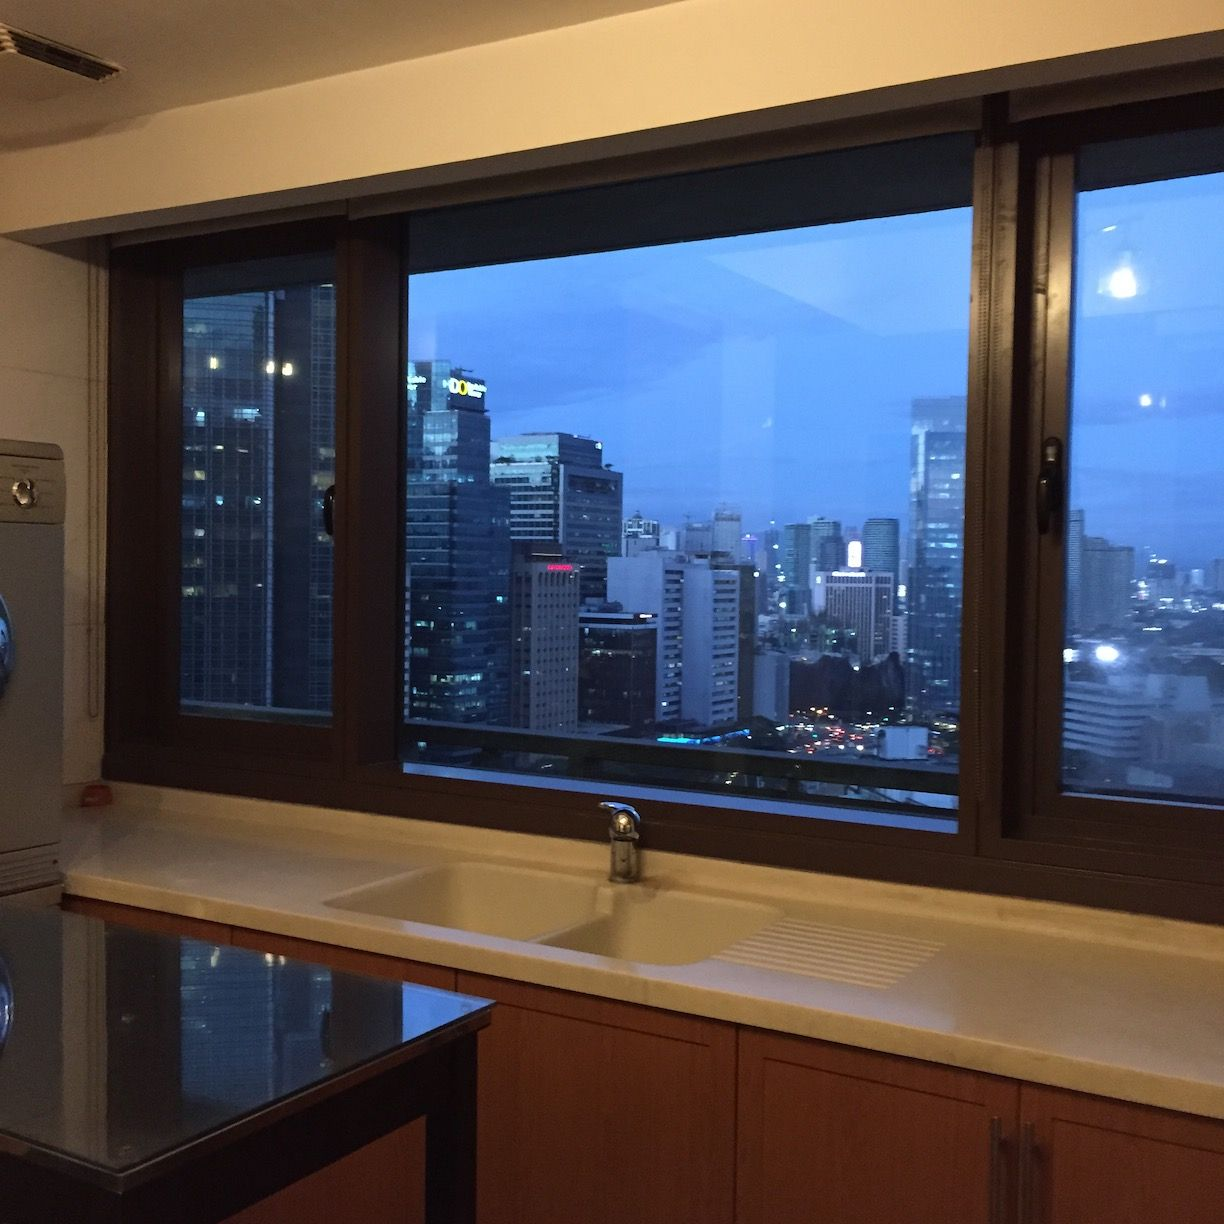 The Shang Grand Tower, 2 Bedroom Condominium Unit For Rent